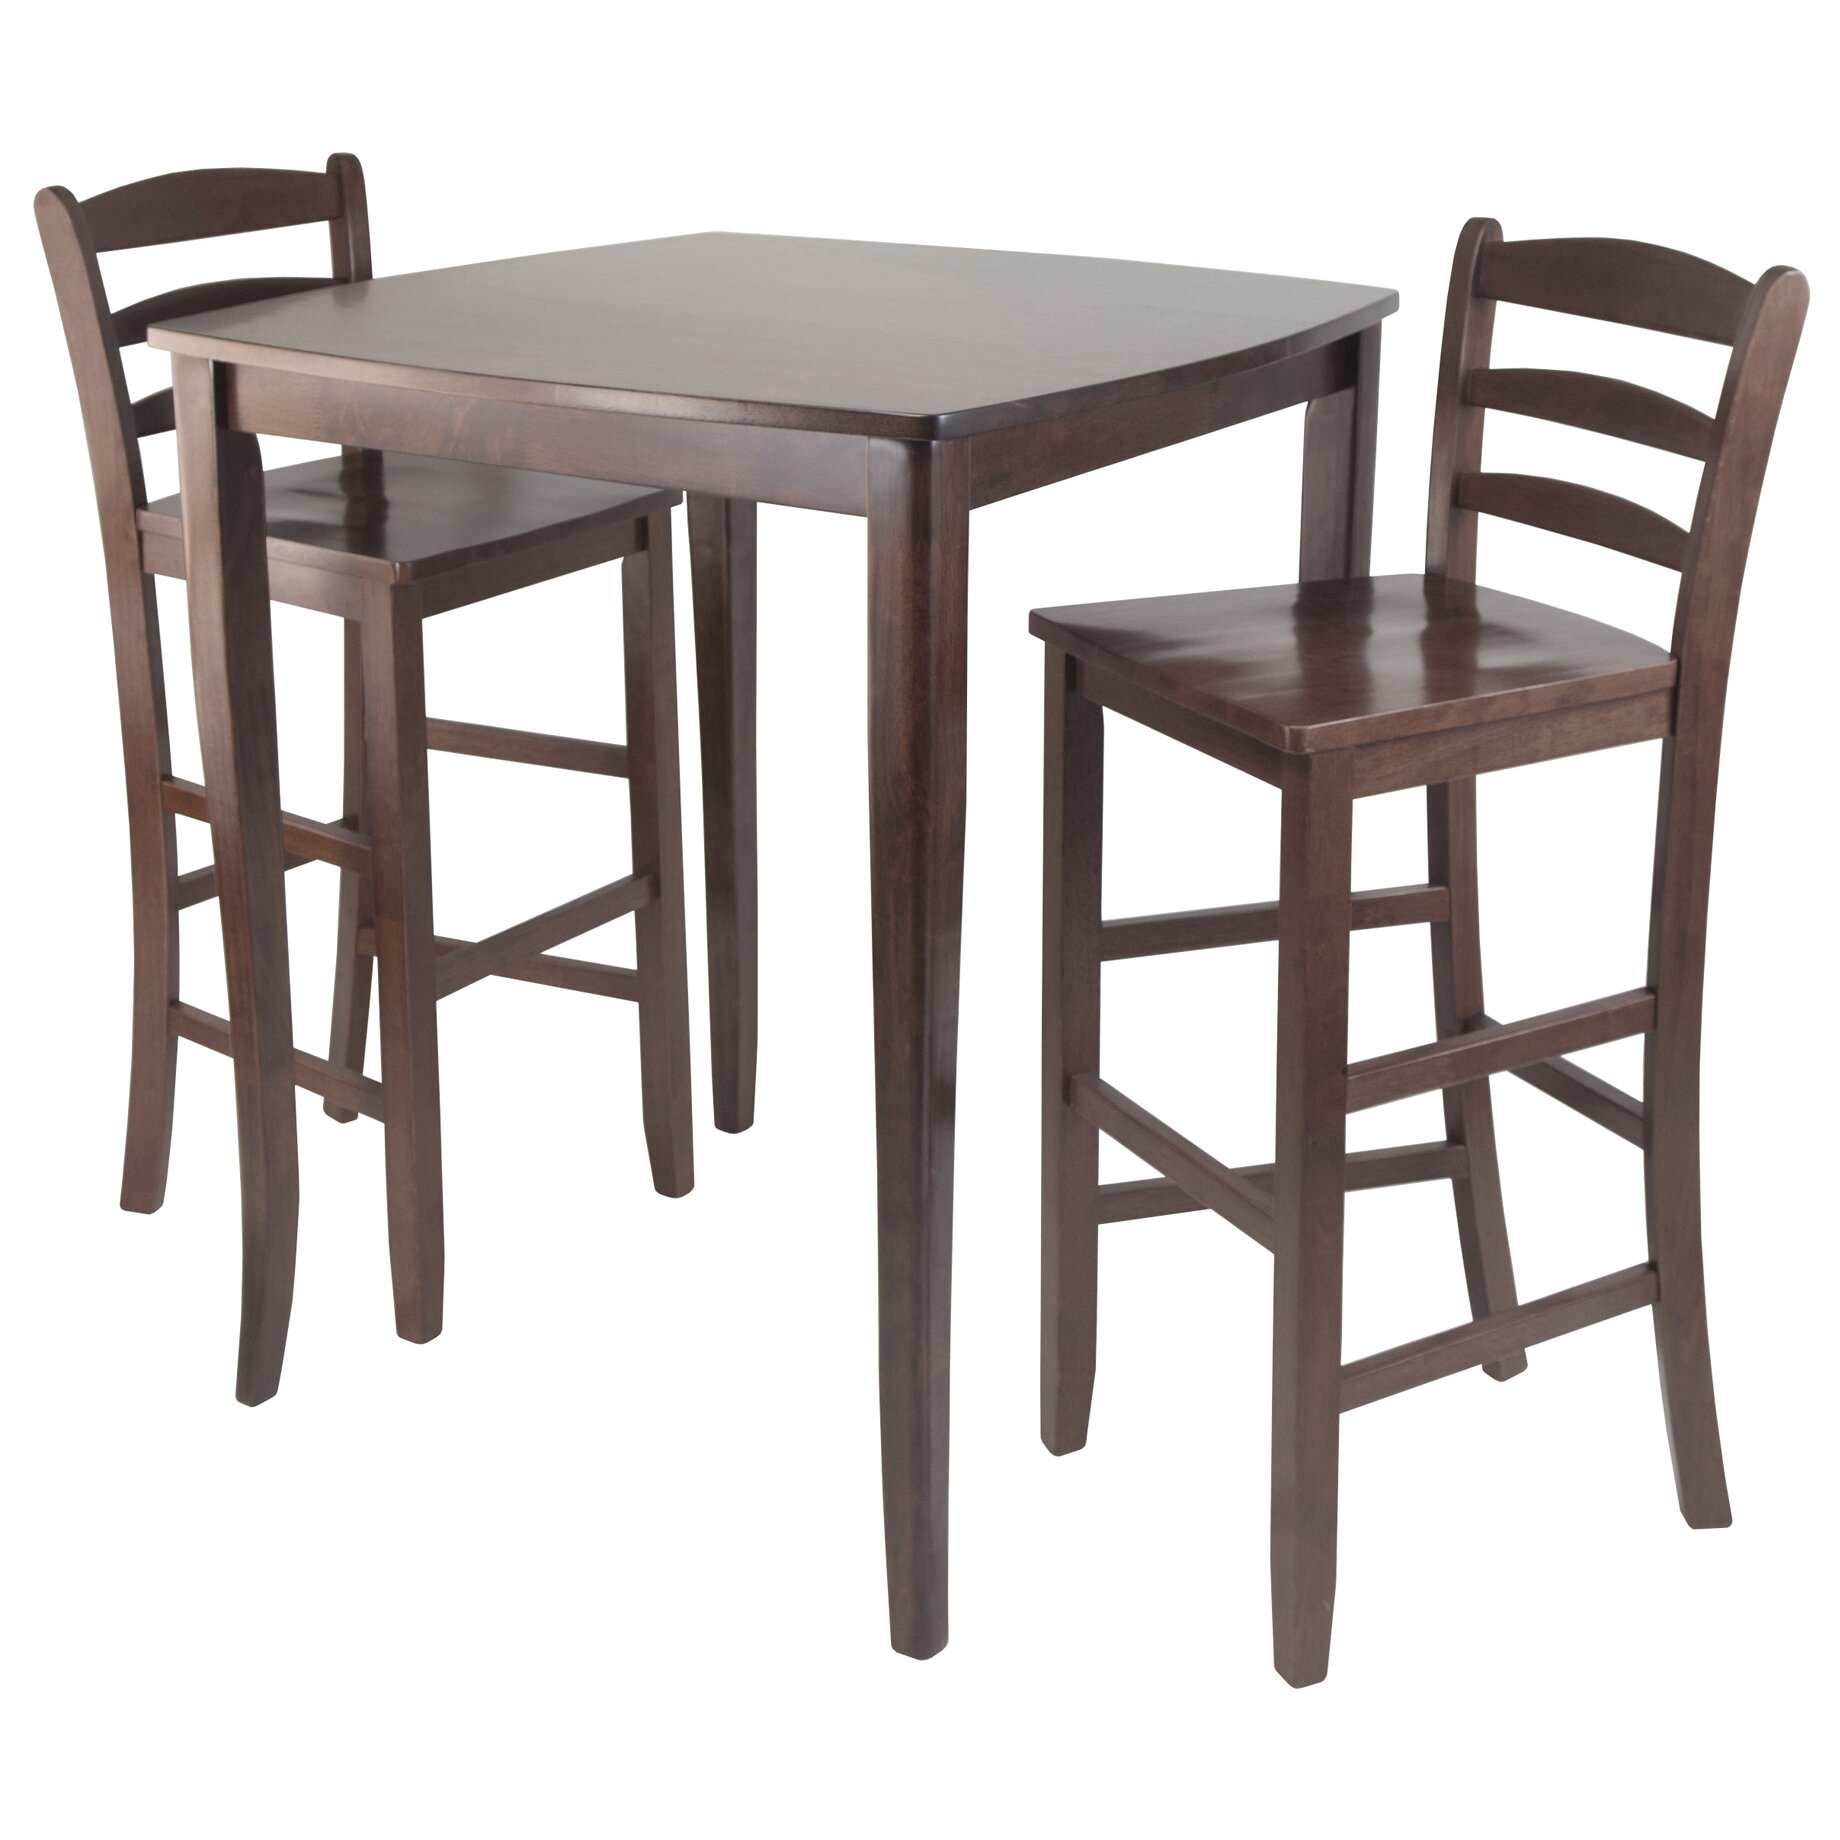 White Counter Height Dining Table Set Of 3 Piece Bar Pub: Winsome Inglewood 3 Piece Counter Height Pub Table Set